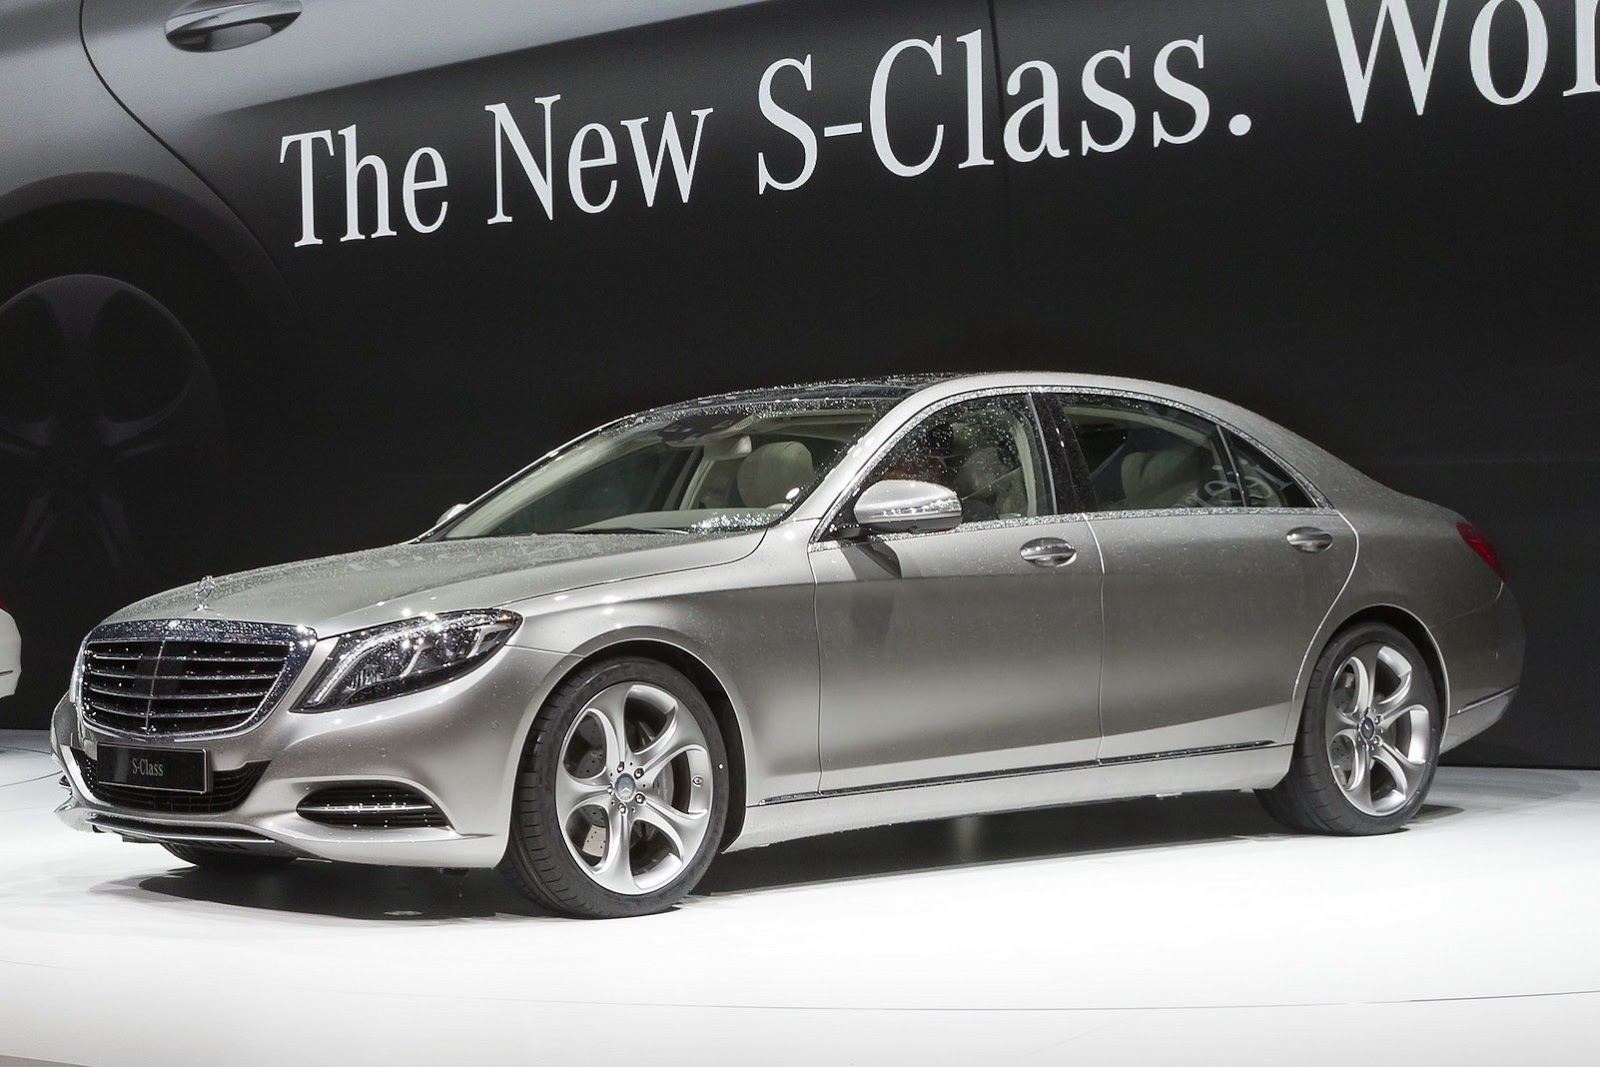 2014 Mercedes Benz S-Class Reveal Event - SMADE MEDIA (12)